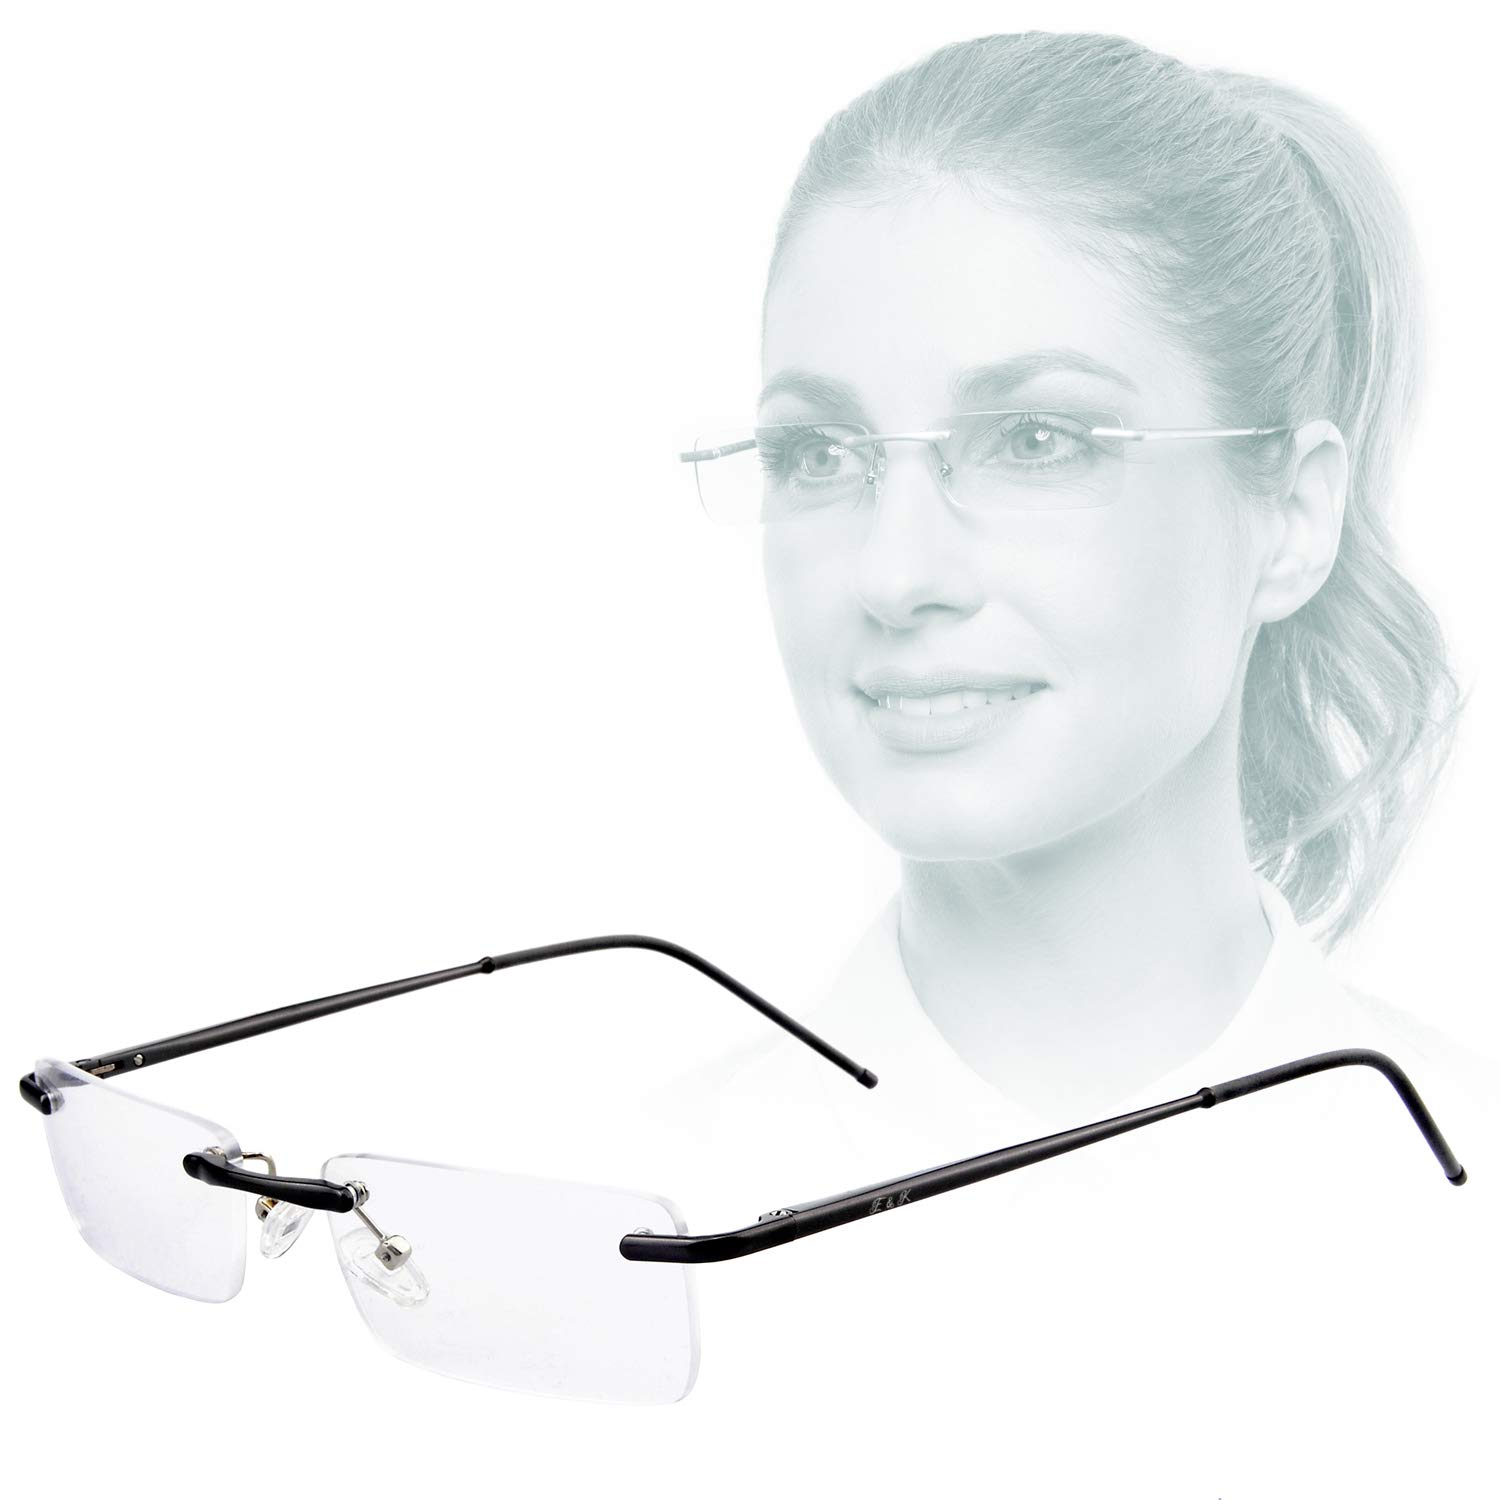 Edison & King Clarity Rimless Reading Glasses - an Elegant Accessory with Premium Lenses Including Blue Light Filter (+2.50 dpt, Black) by Edison & King